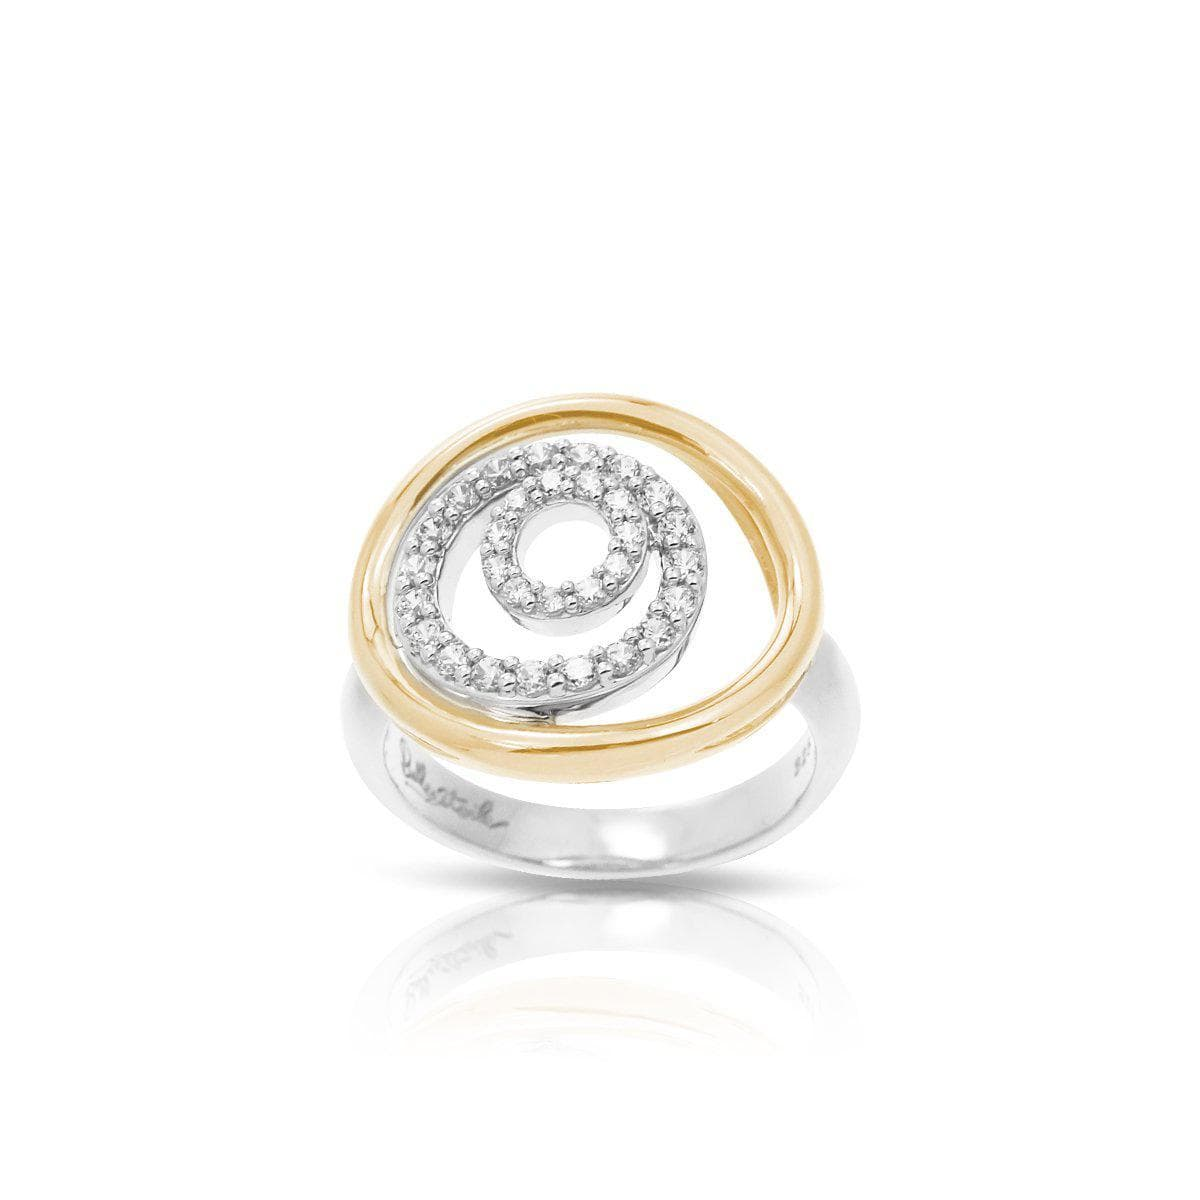 Concentra White and Yellow Ring-Belle Etoile-Renee Taylor Gallery